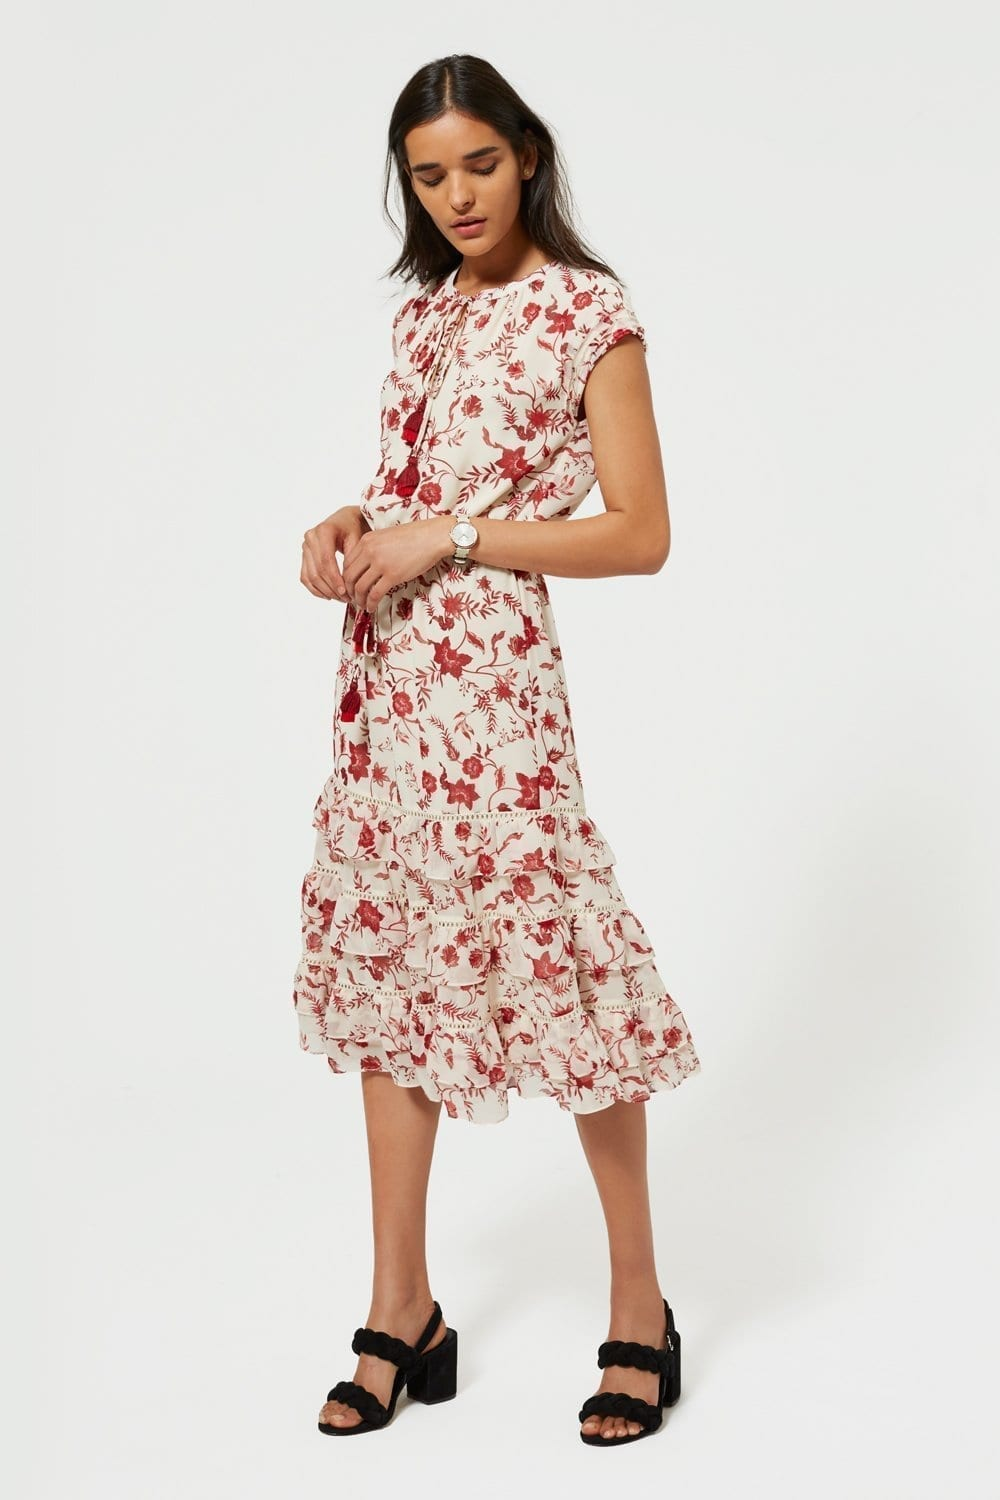 REBECCA MINKOFF Sophie Cream   Floral Printed Dress - We Select Dresses 027fc0b09d5